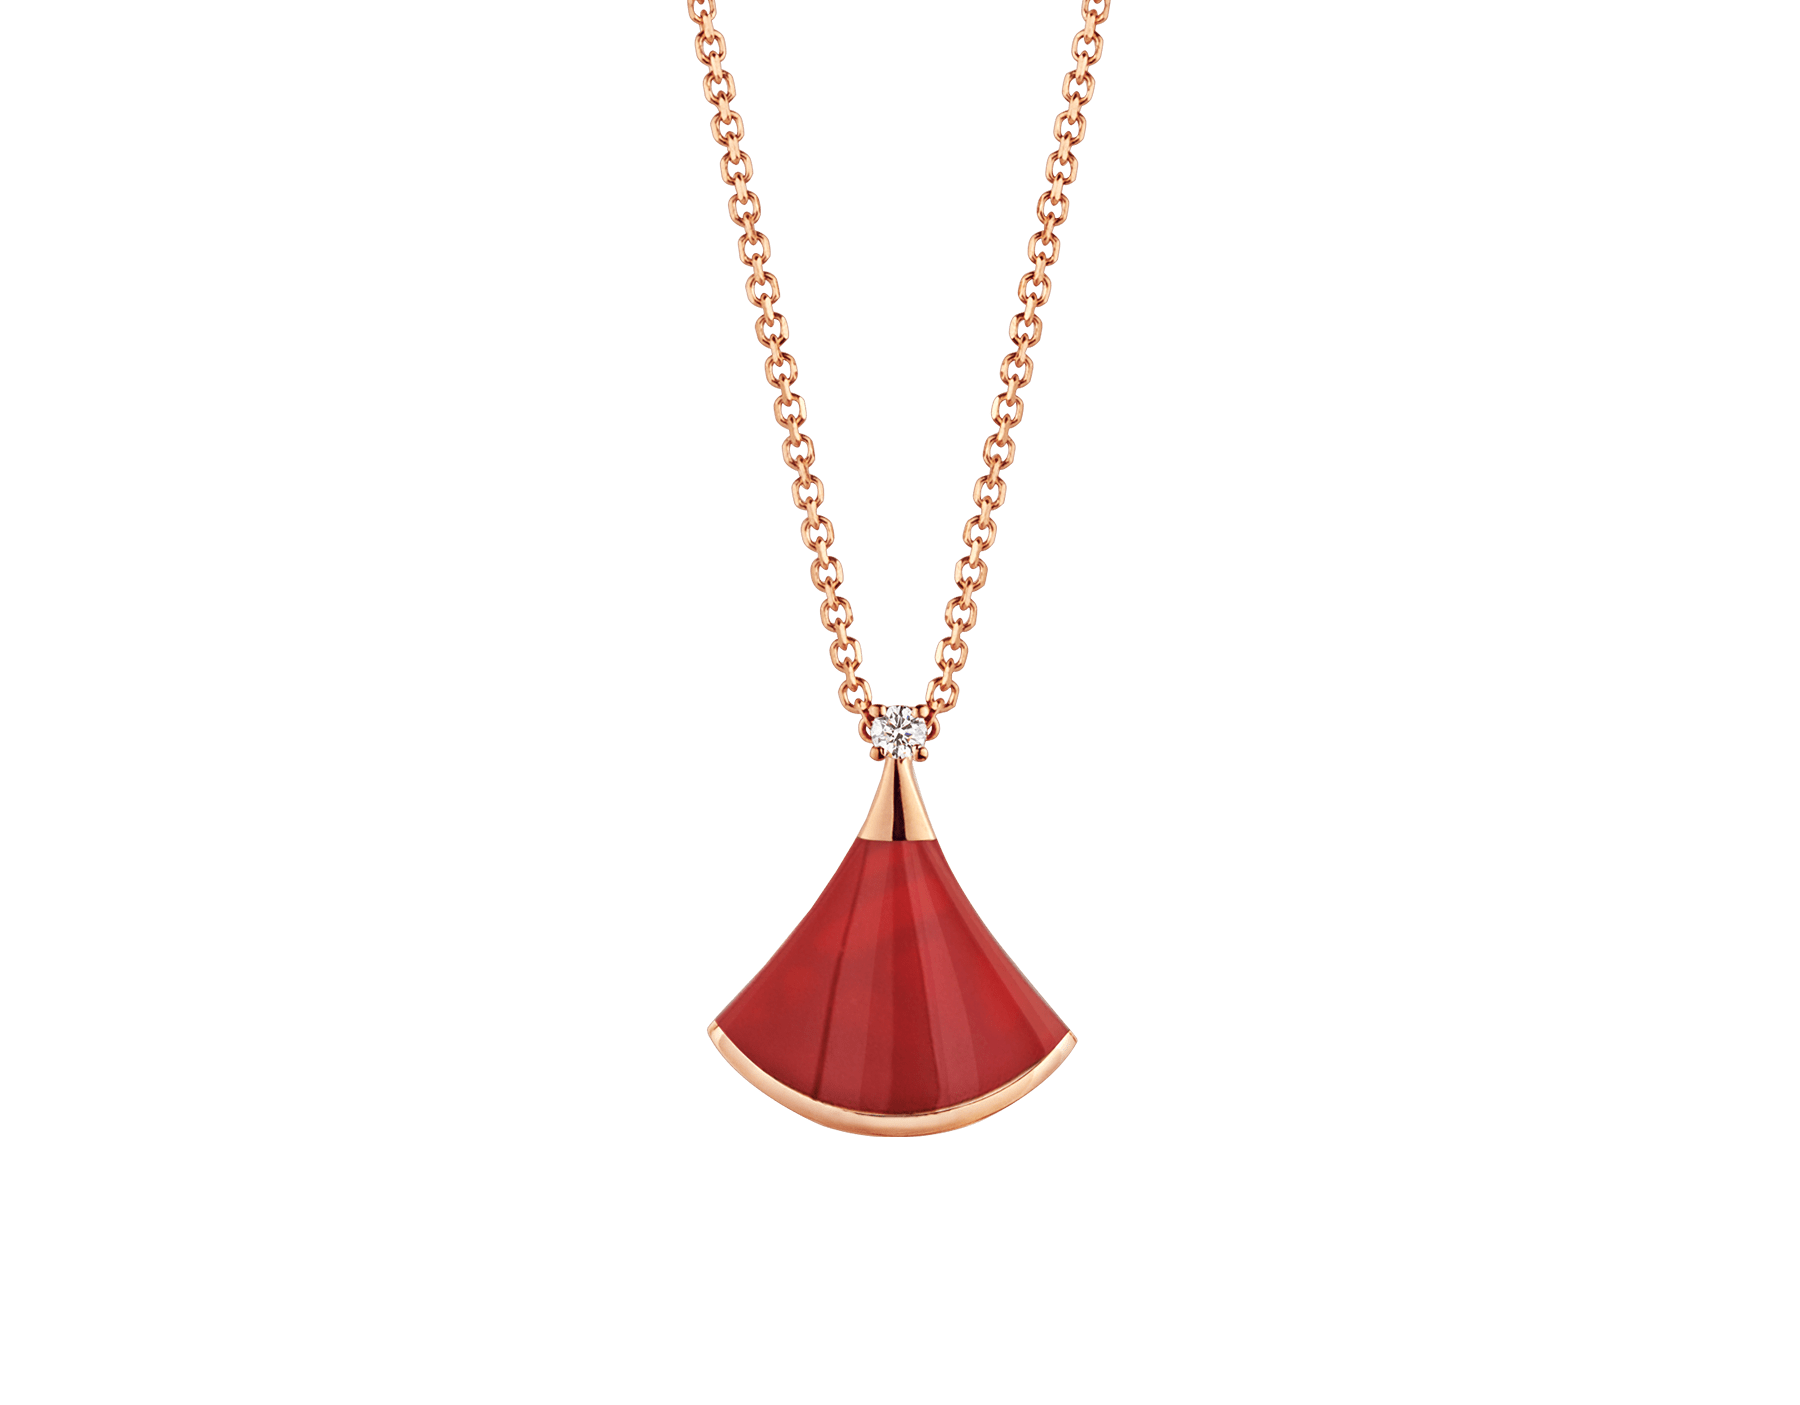 DIVAS' DREAM necklace in 18 kt rose gold with 18 kt rose gold pendant set with one diamond and carnelian. 350583 image 1